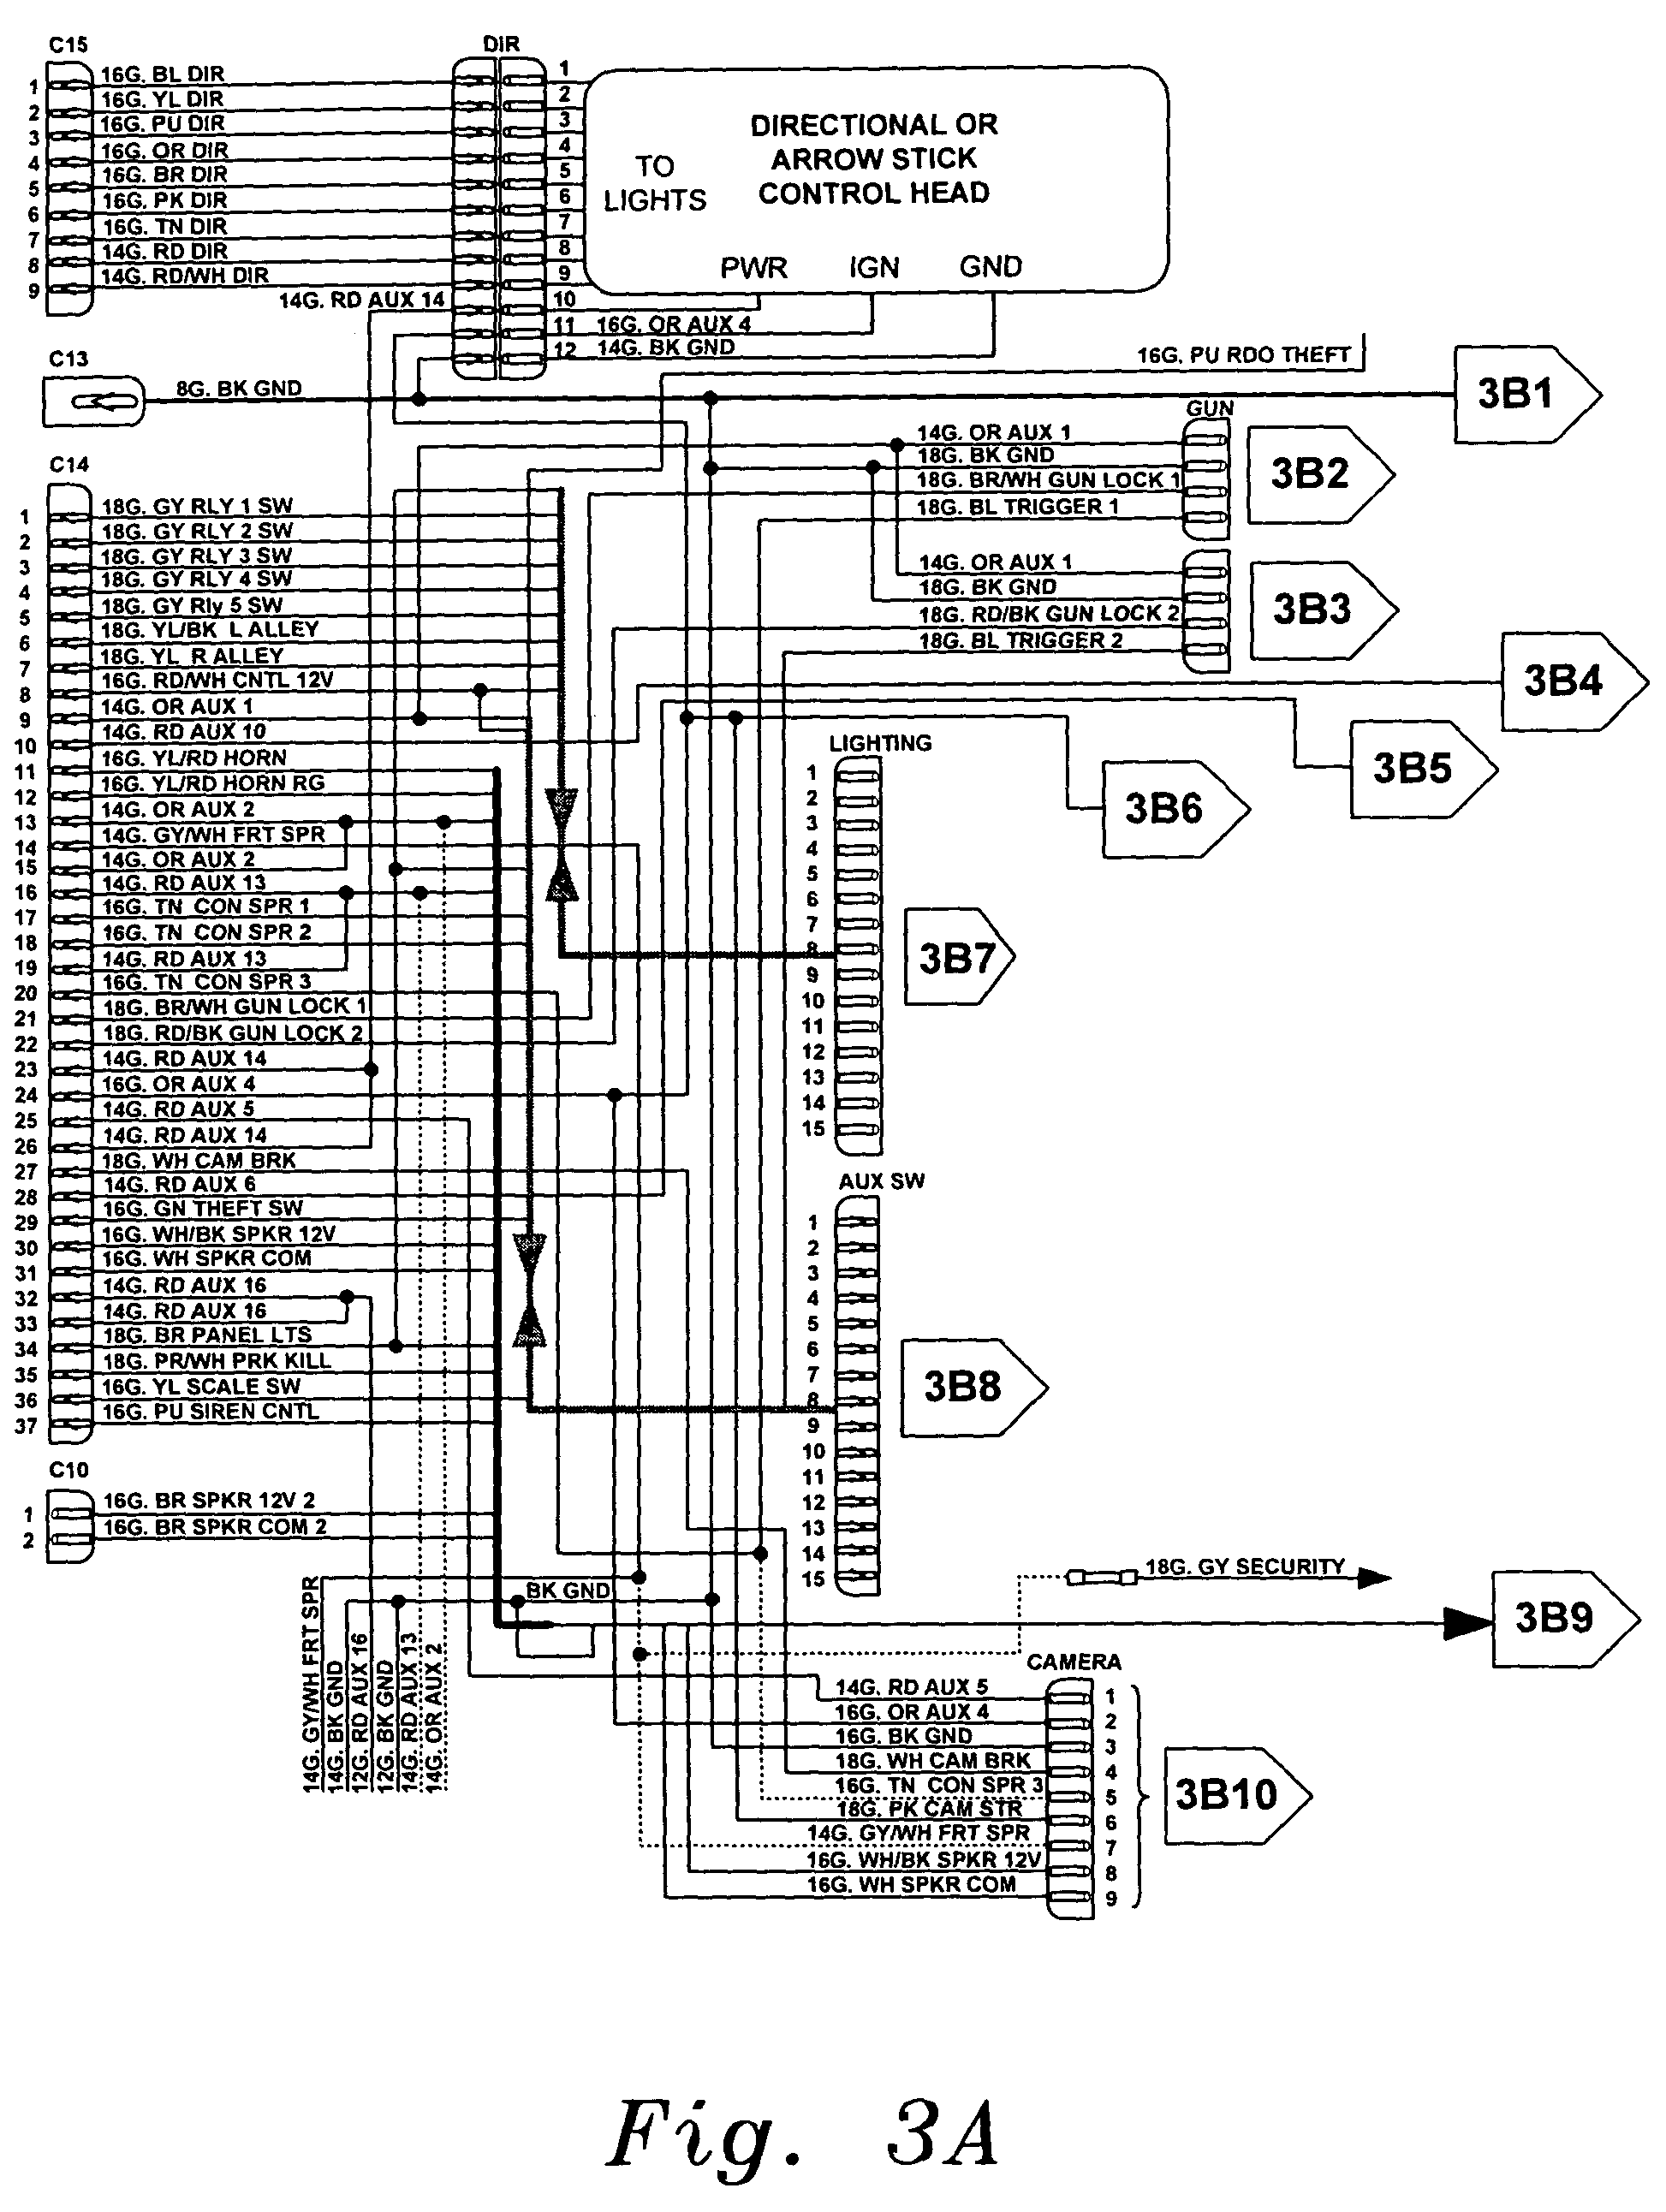 whelen switch box wiring diagram whelen get free image about wiring diagram